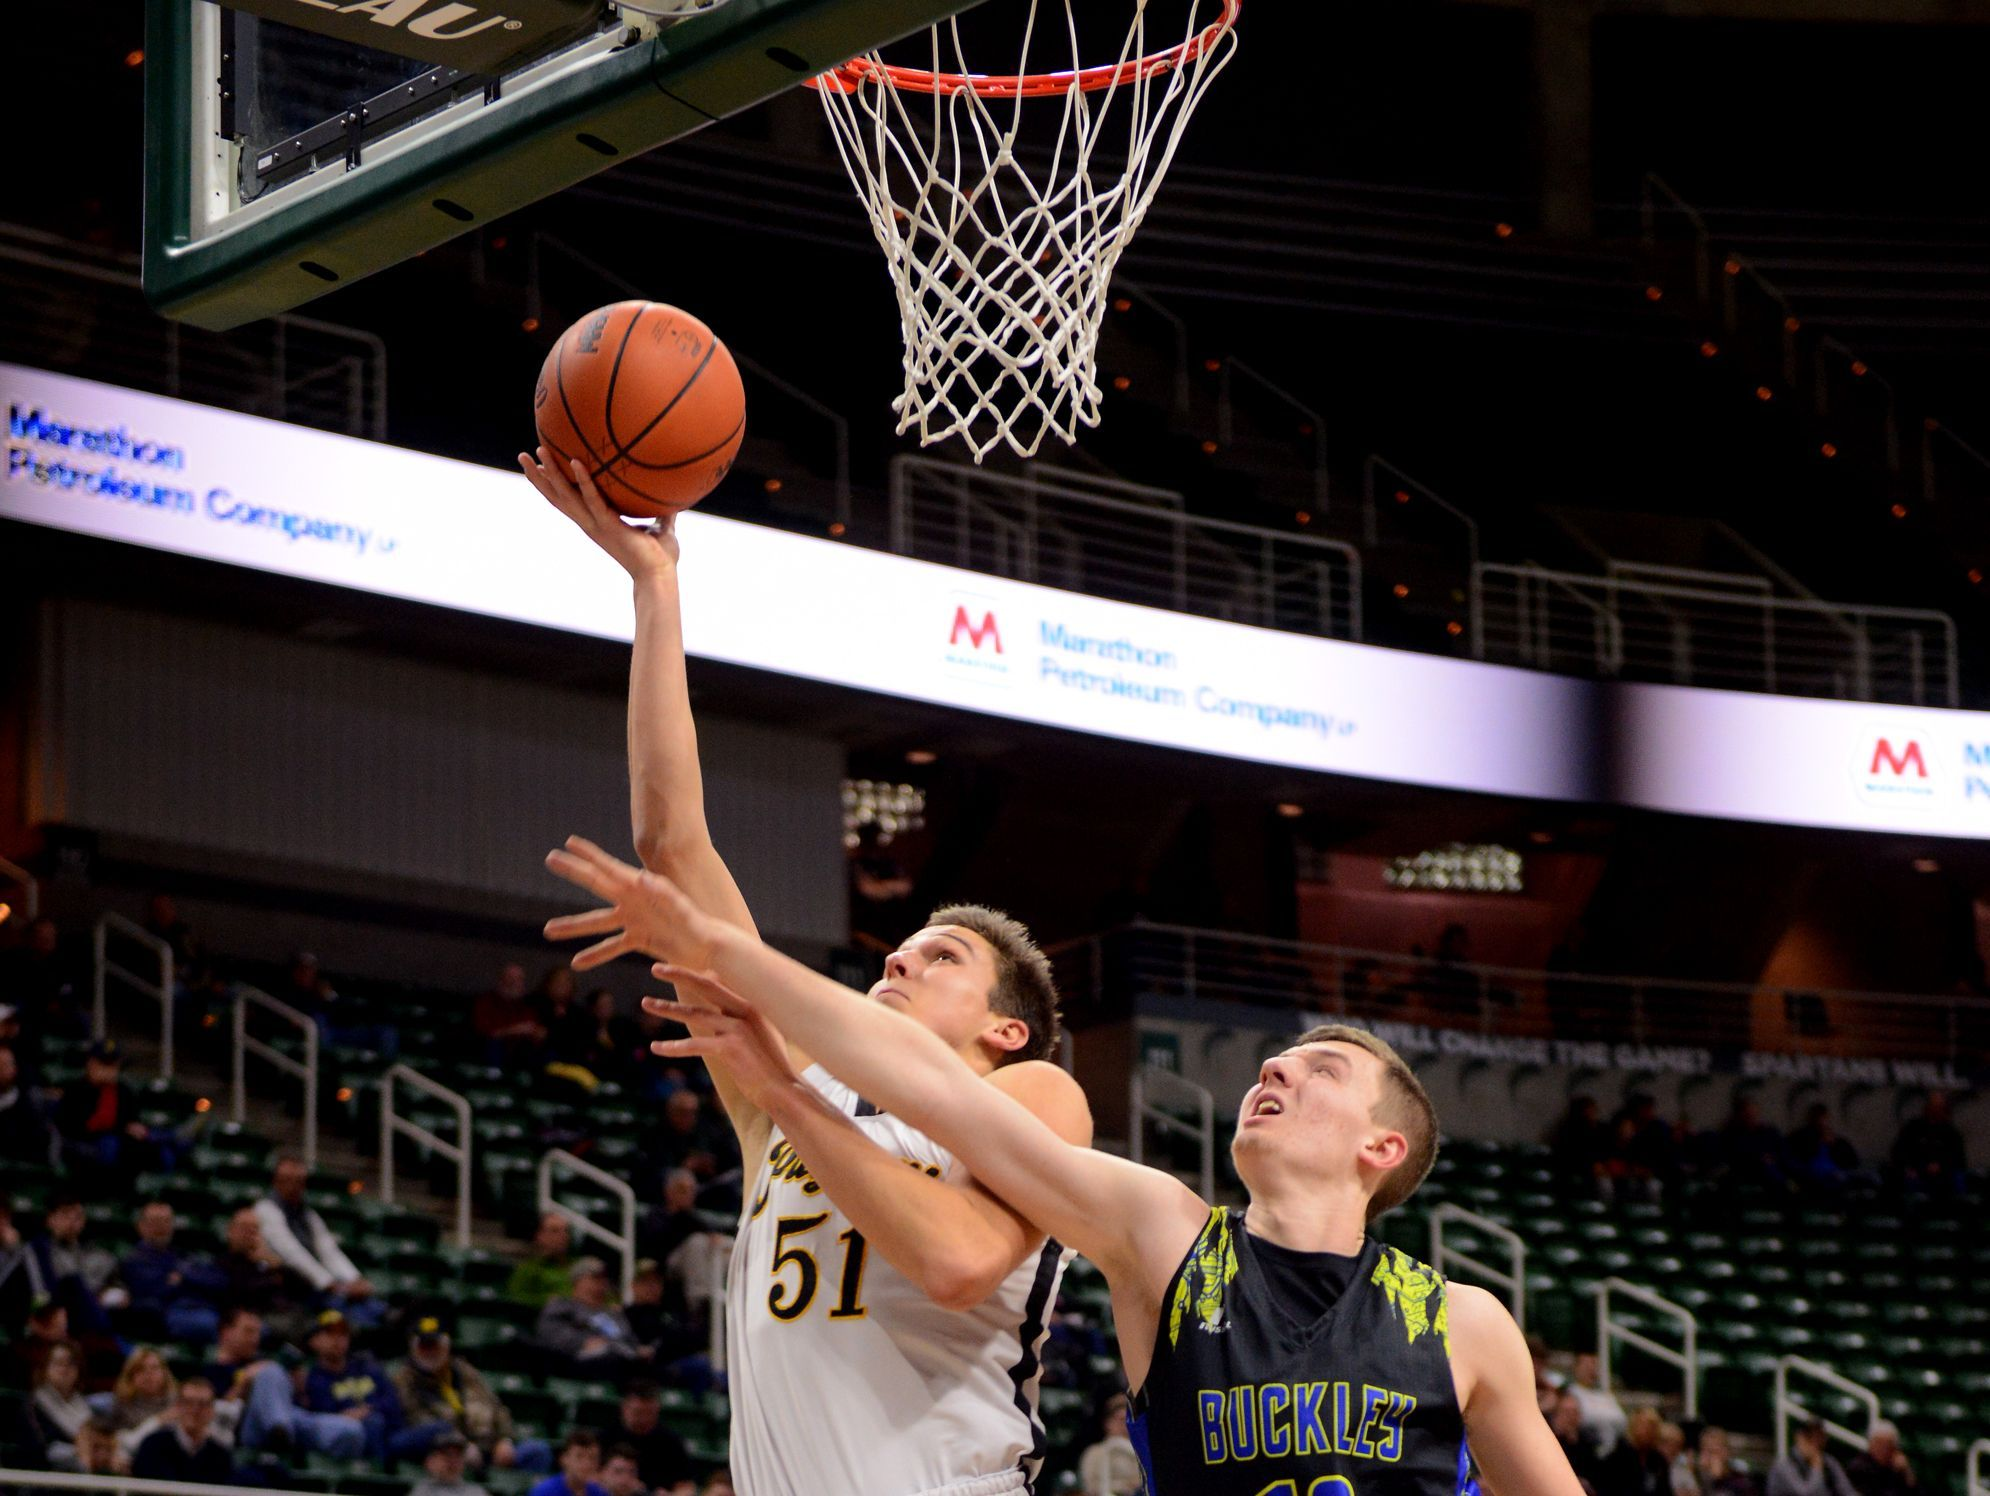 Lansing Christian's Preston Granger goes up to the basket as Buckley's Austin Harris tries to block during the Class D state semifinals against Buckley on Thursday, March 23, 2017 at the Breslin Center in East Lansing. Buckley won, 68-61.